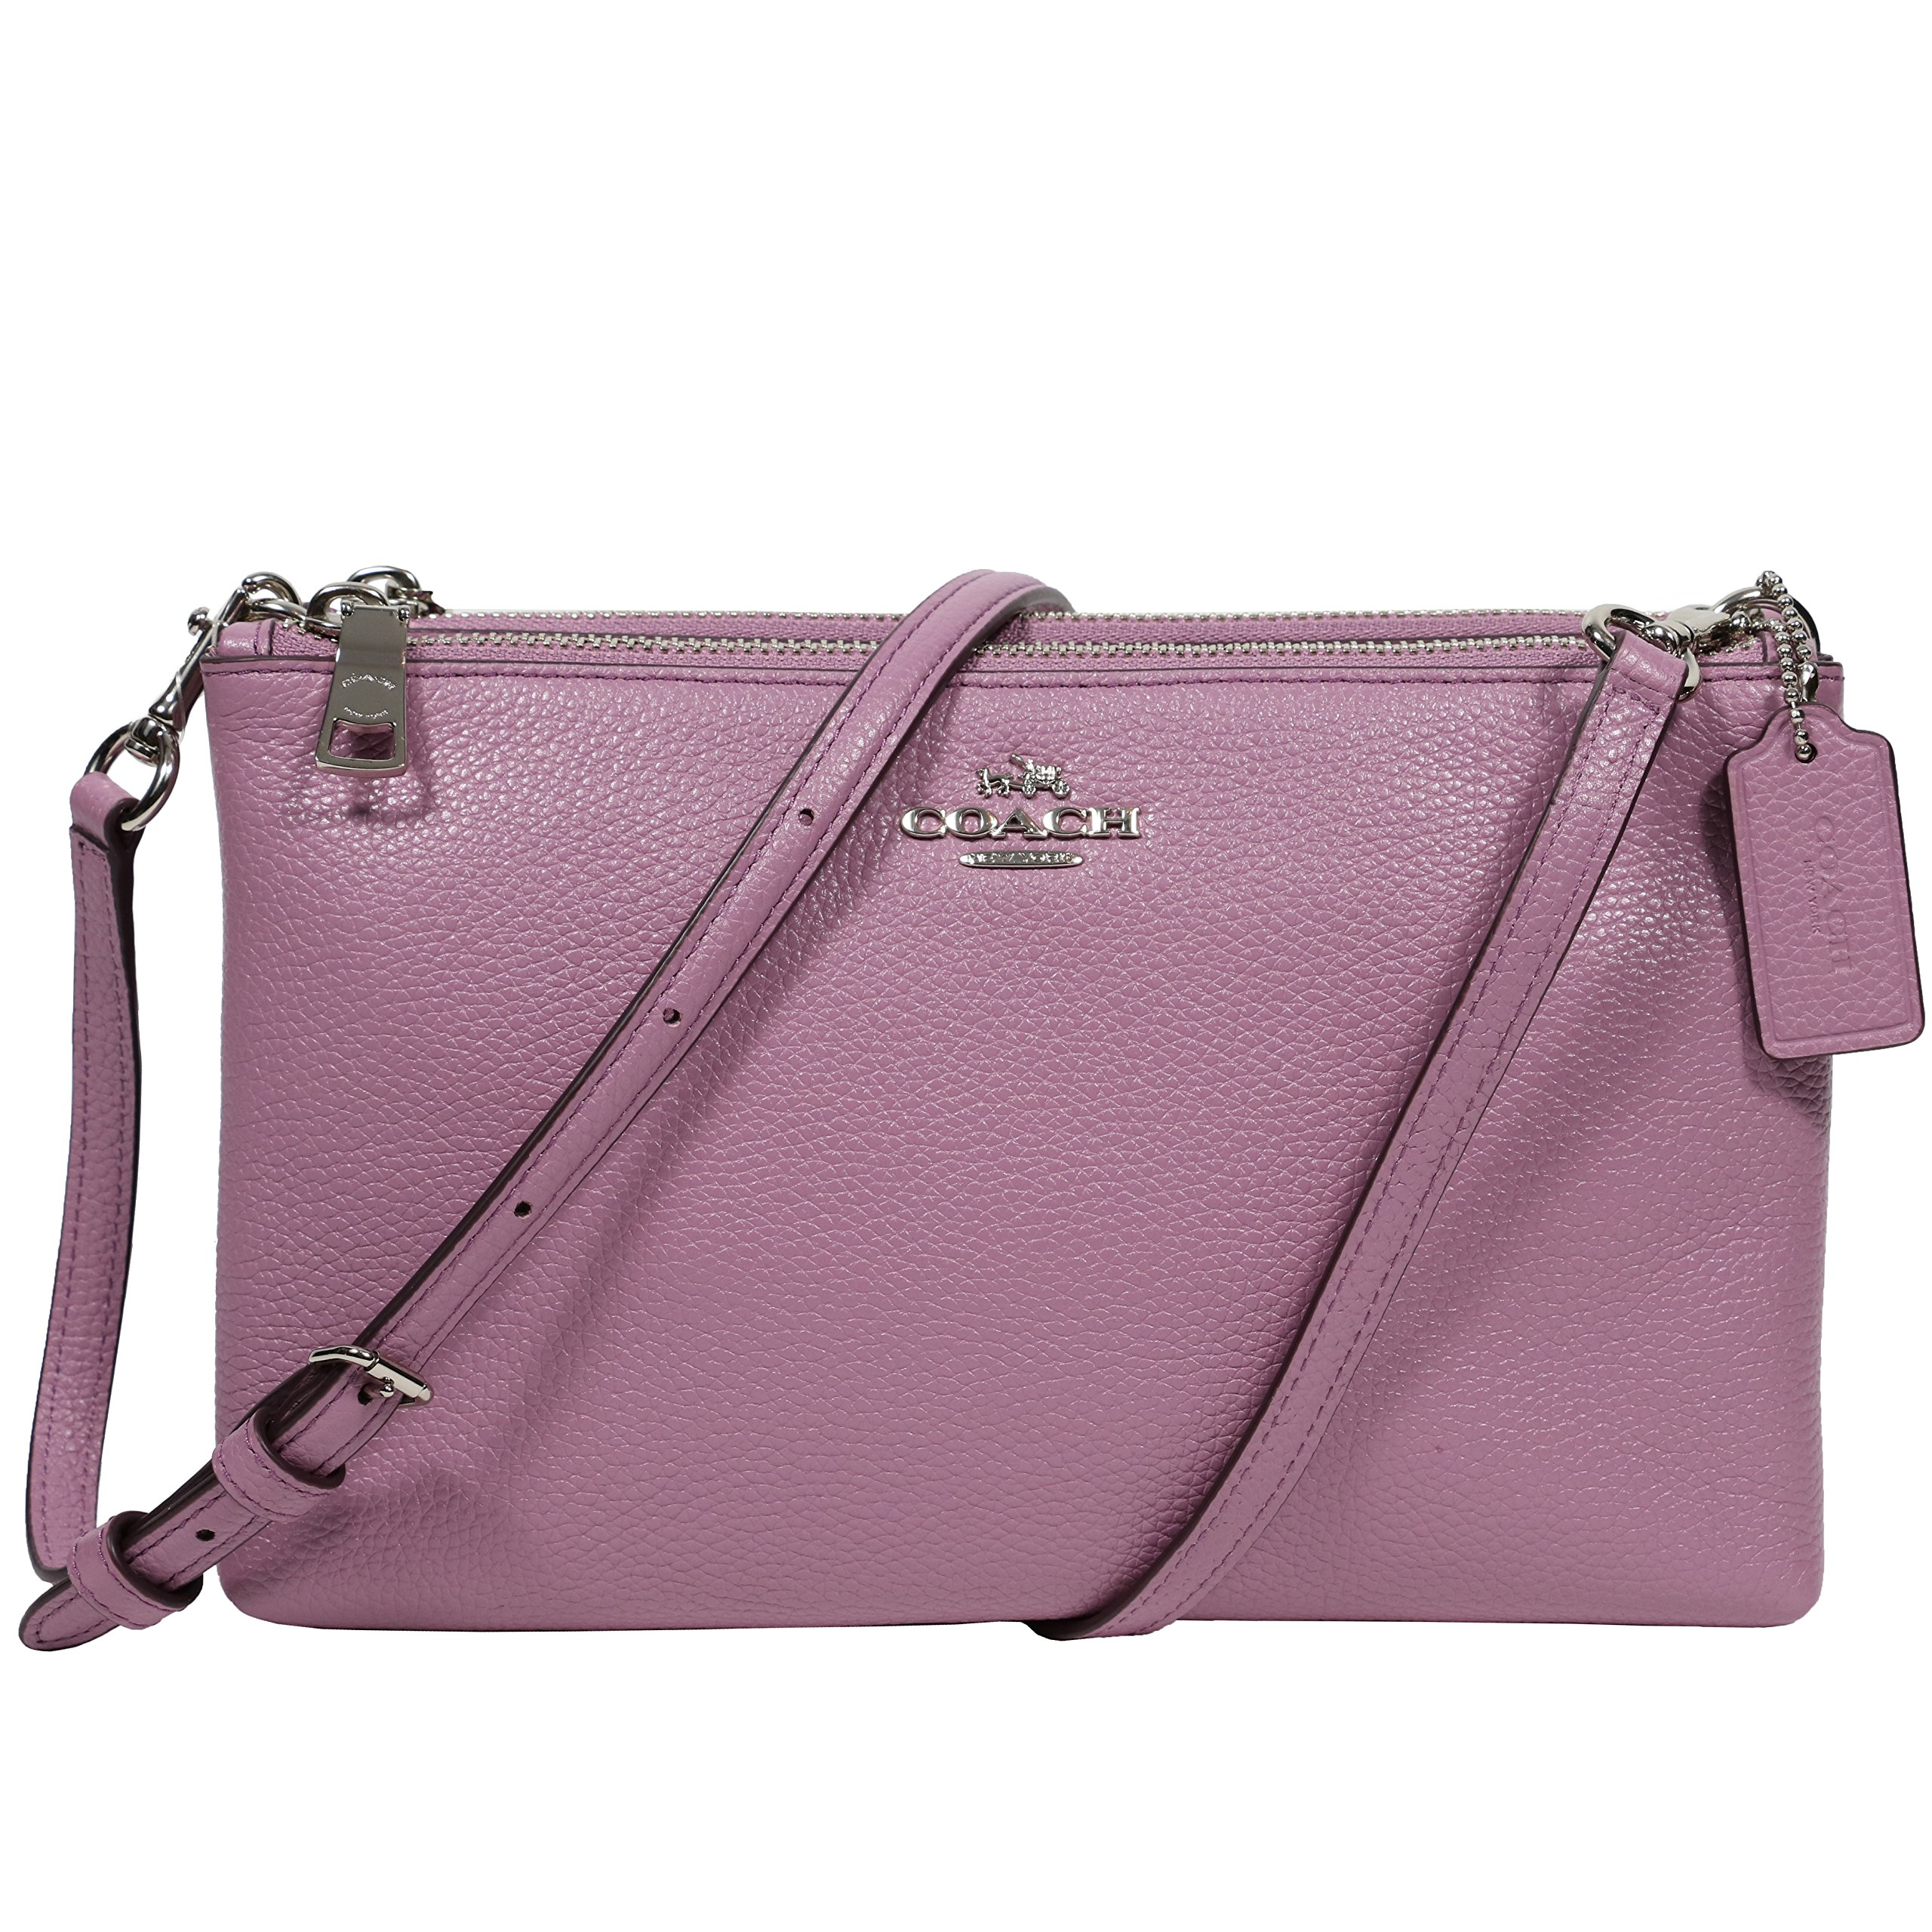 Coach Womens Lilac Pebble Leather Lyla Double Zip Crossbody Bag, Style F38273, Silver Lilac